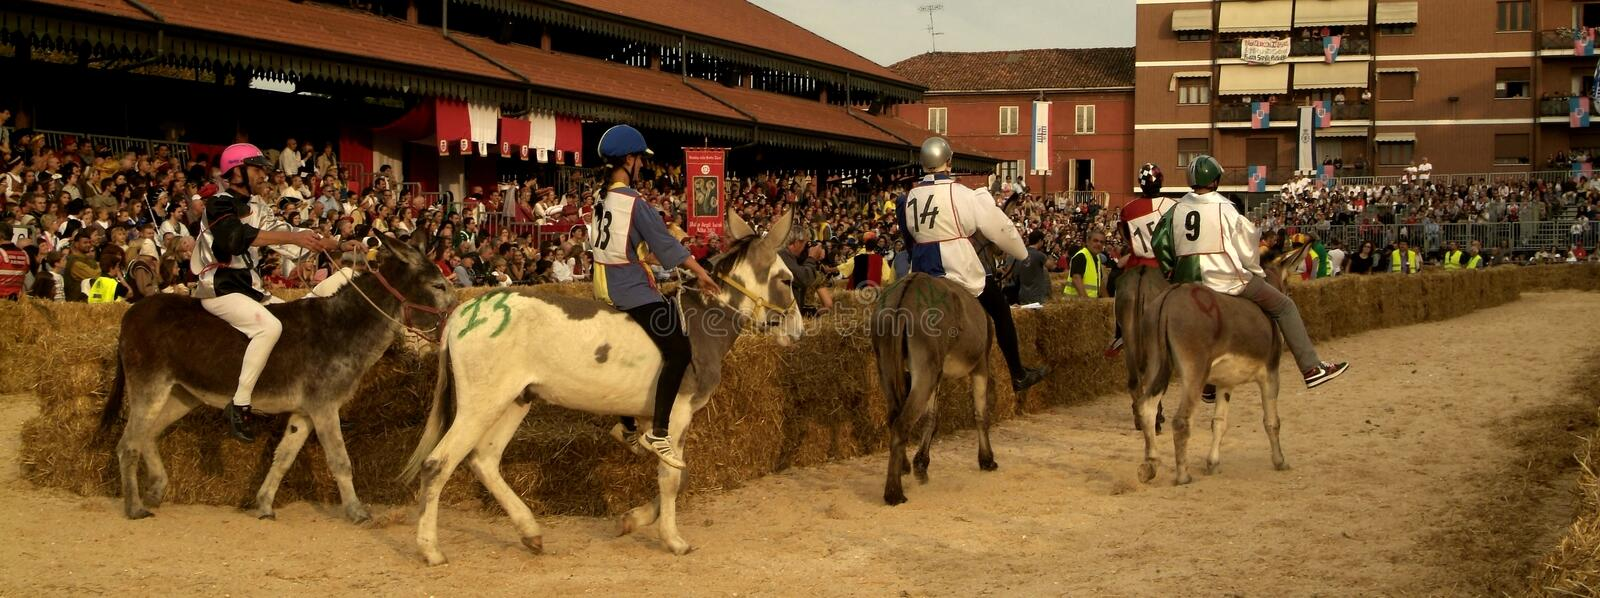 Download Fair And White Truffle Of Alba Donkey Race. Editorial Photography - Image: 27020072